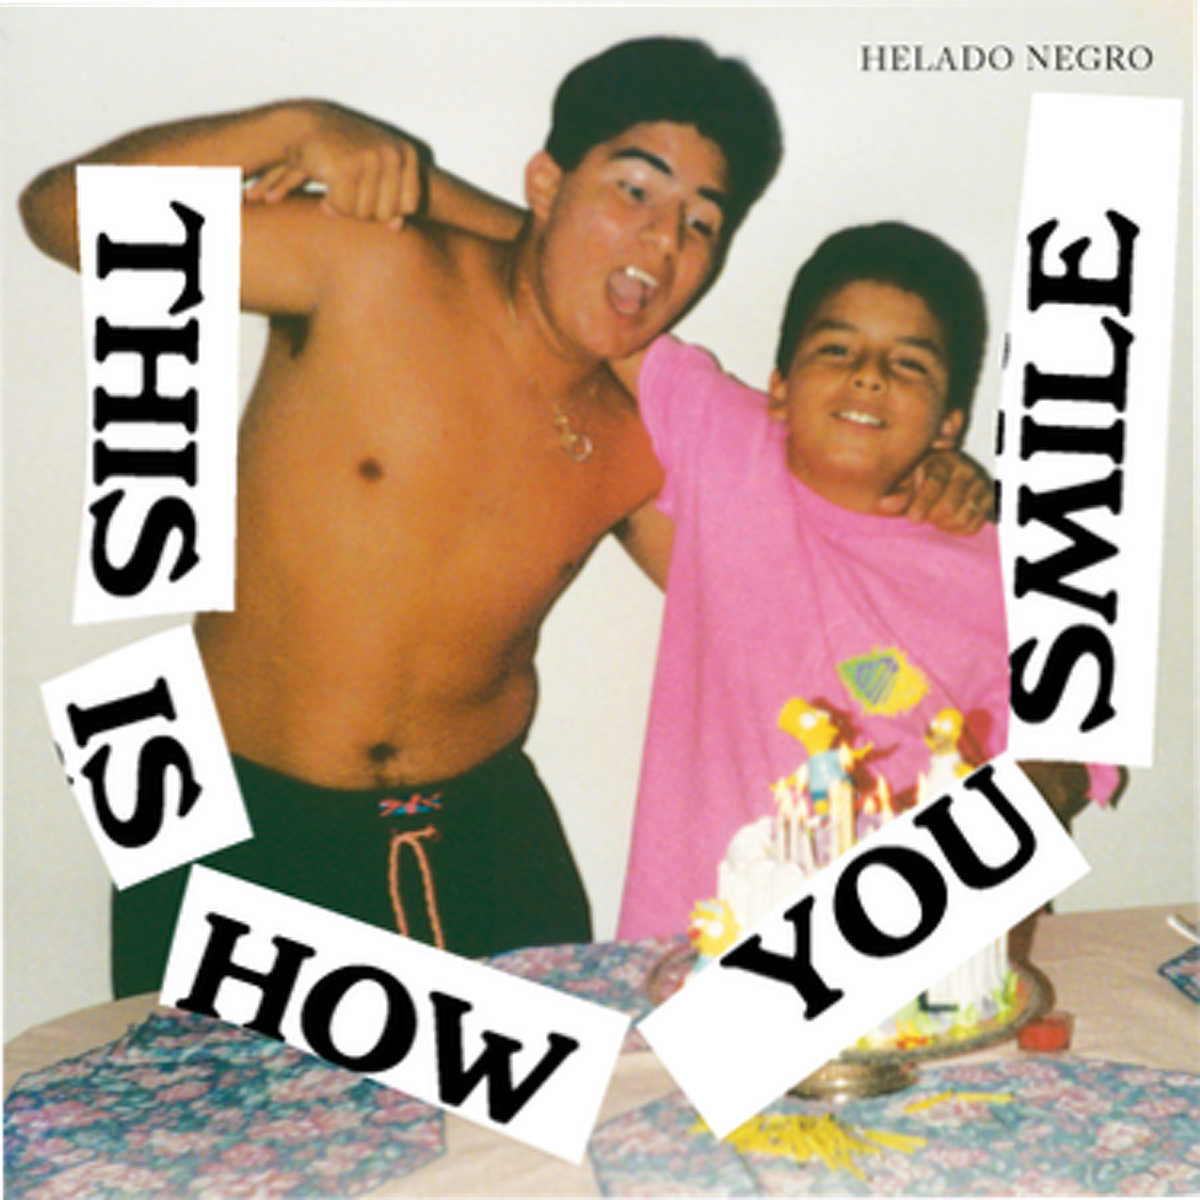 Helado Negro returns to RVNG Intl with This Is How You Smile